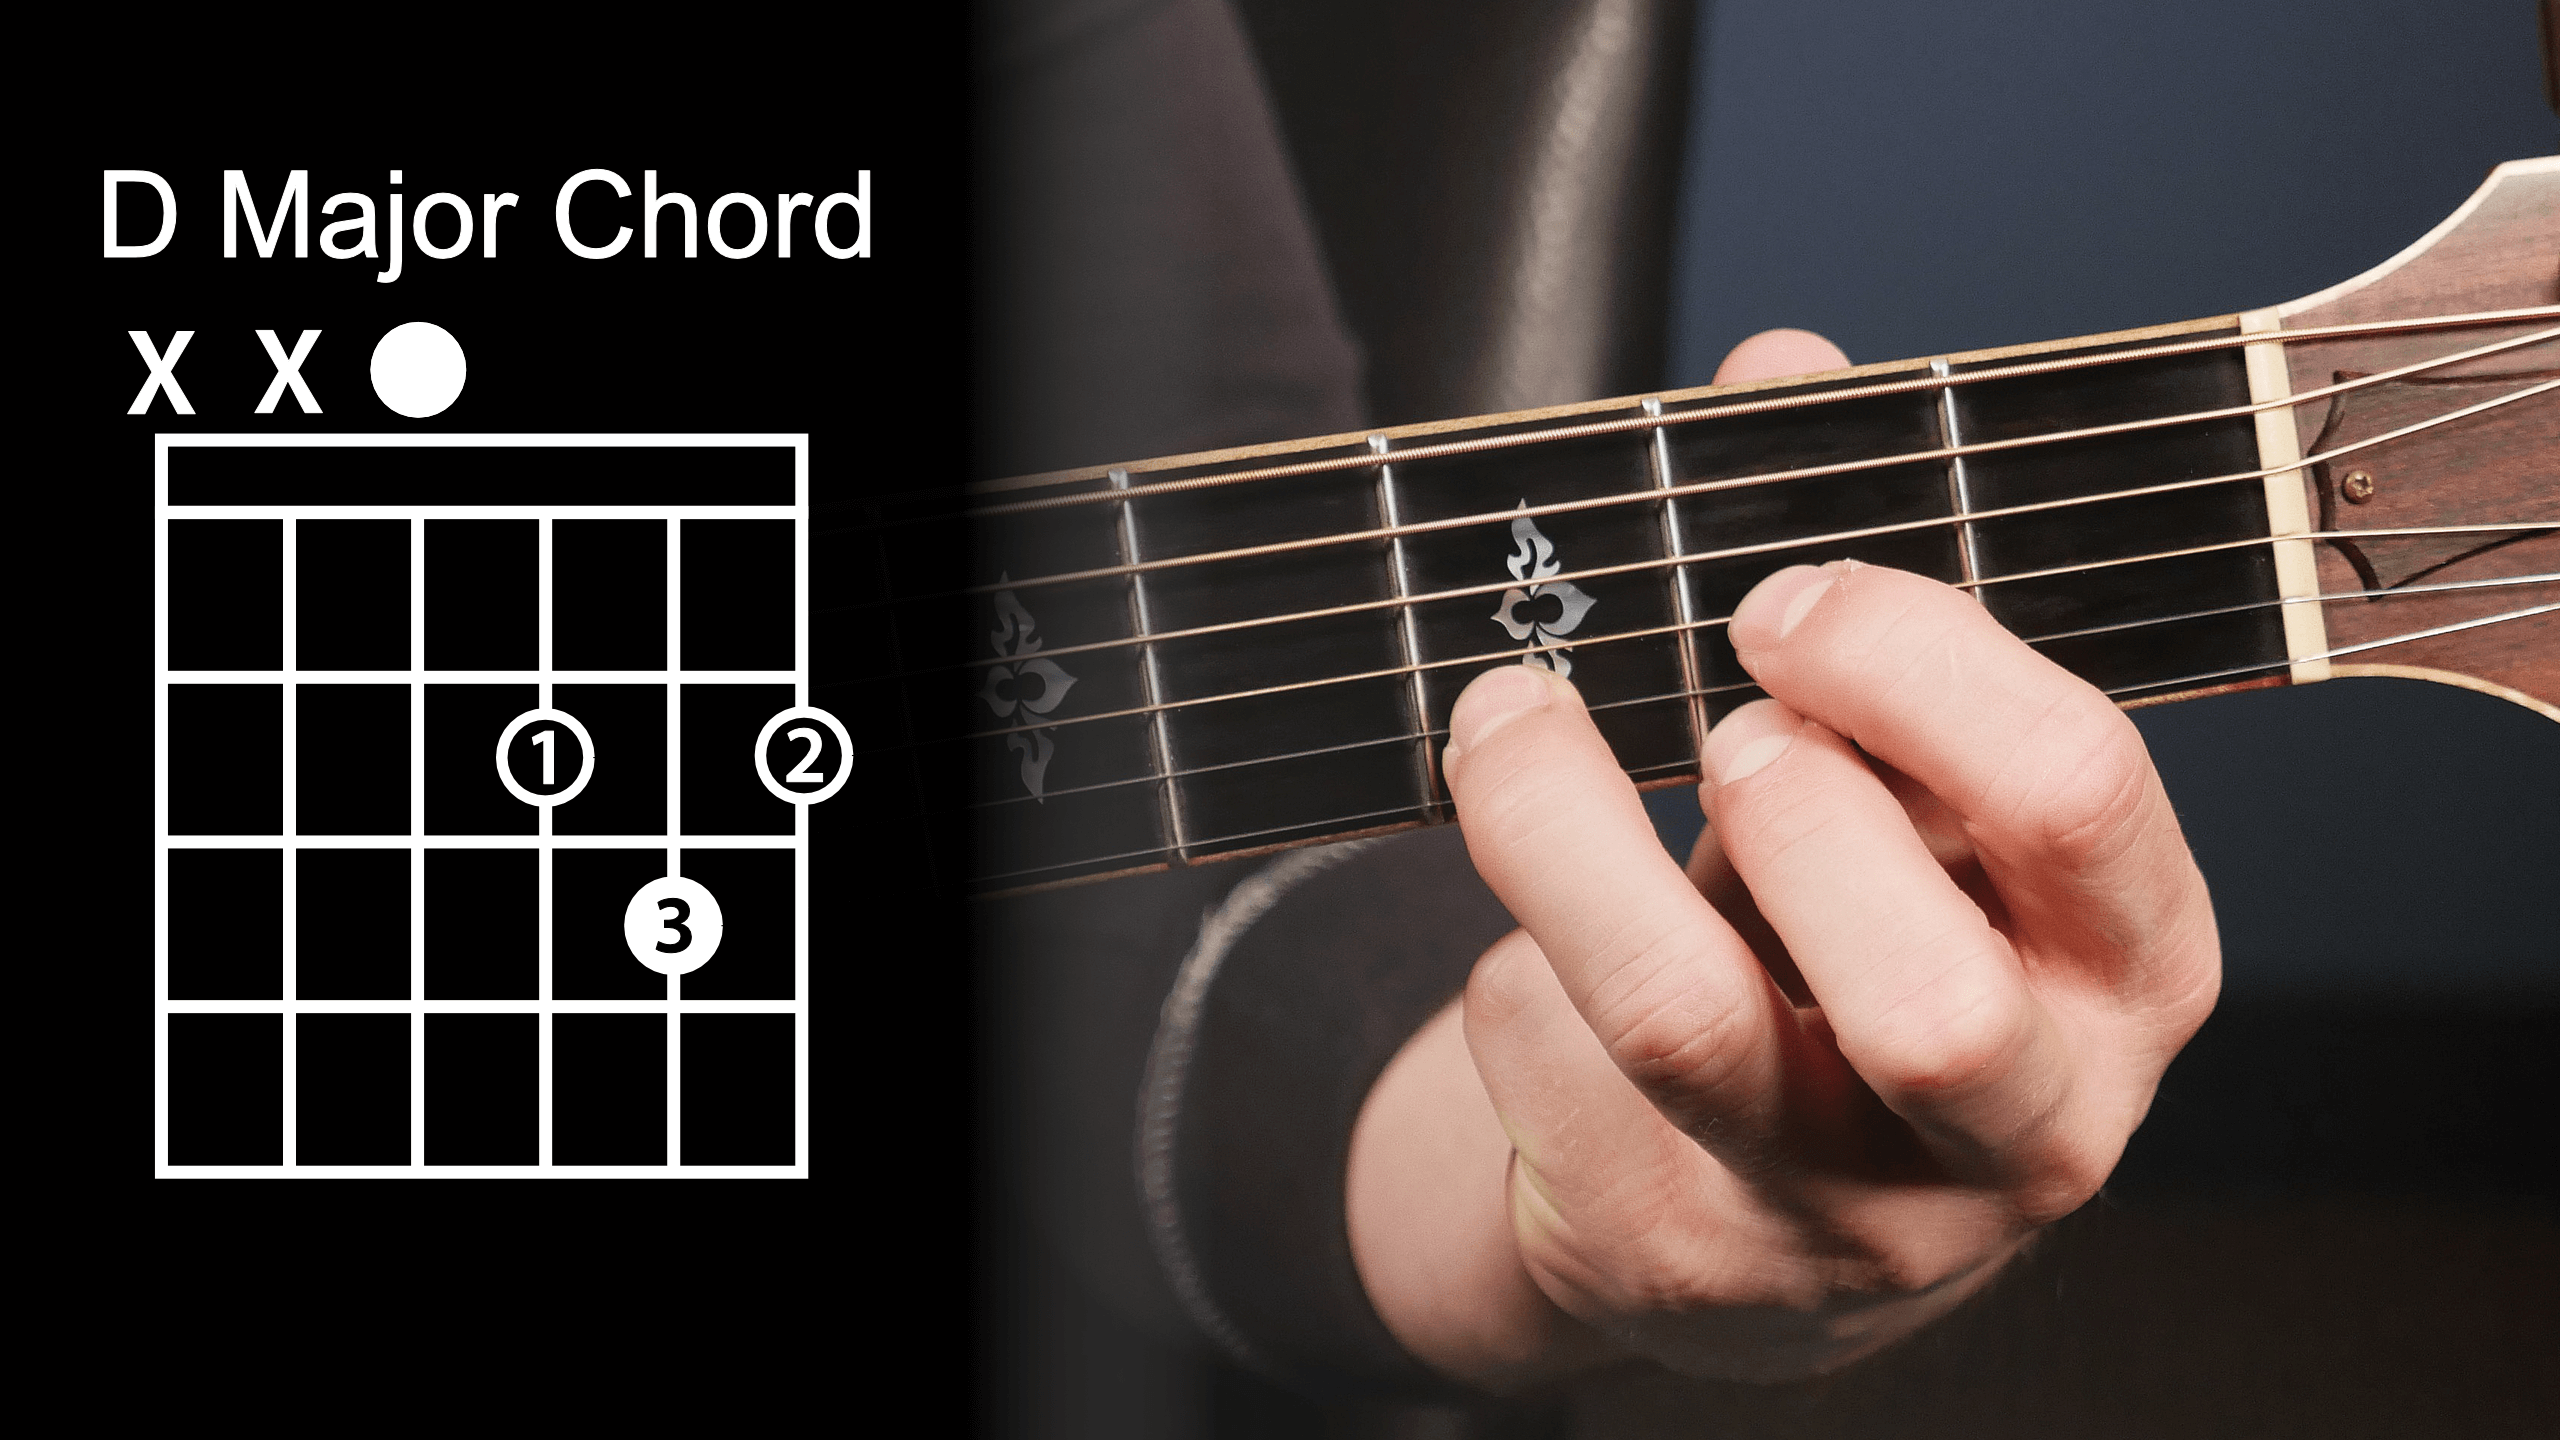 D Major Chord Diagram